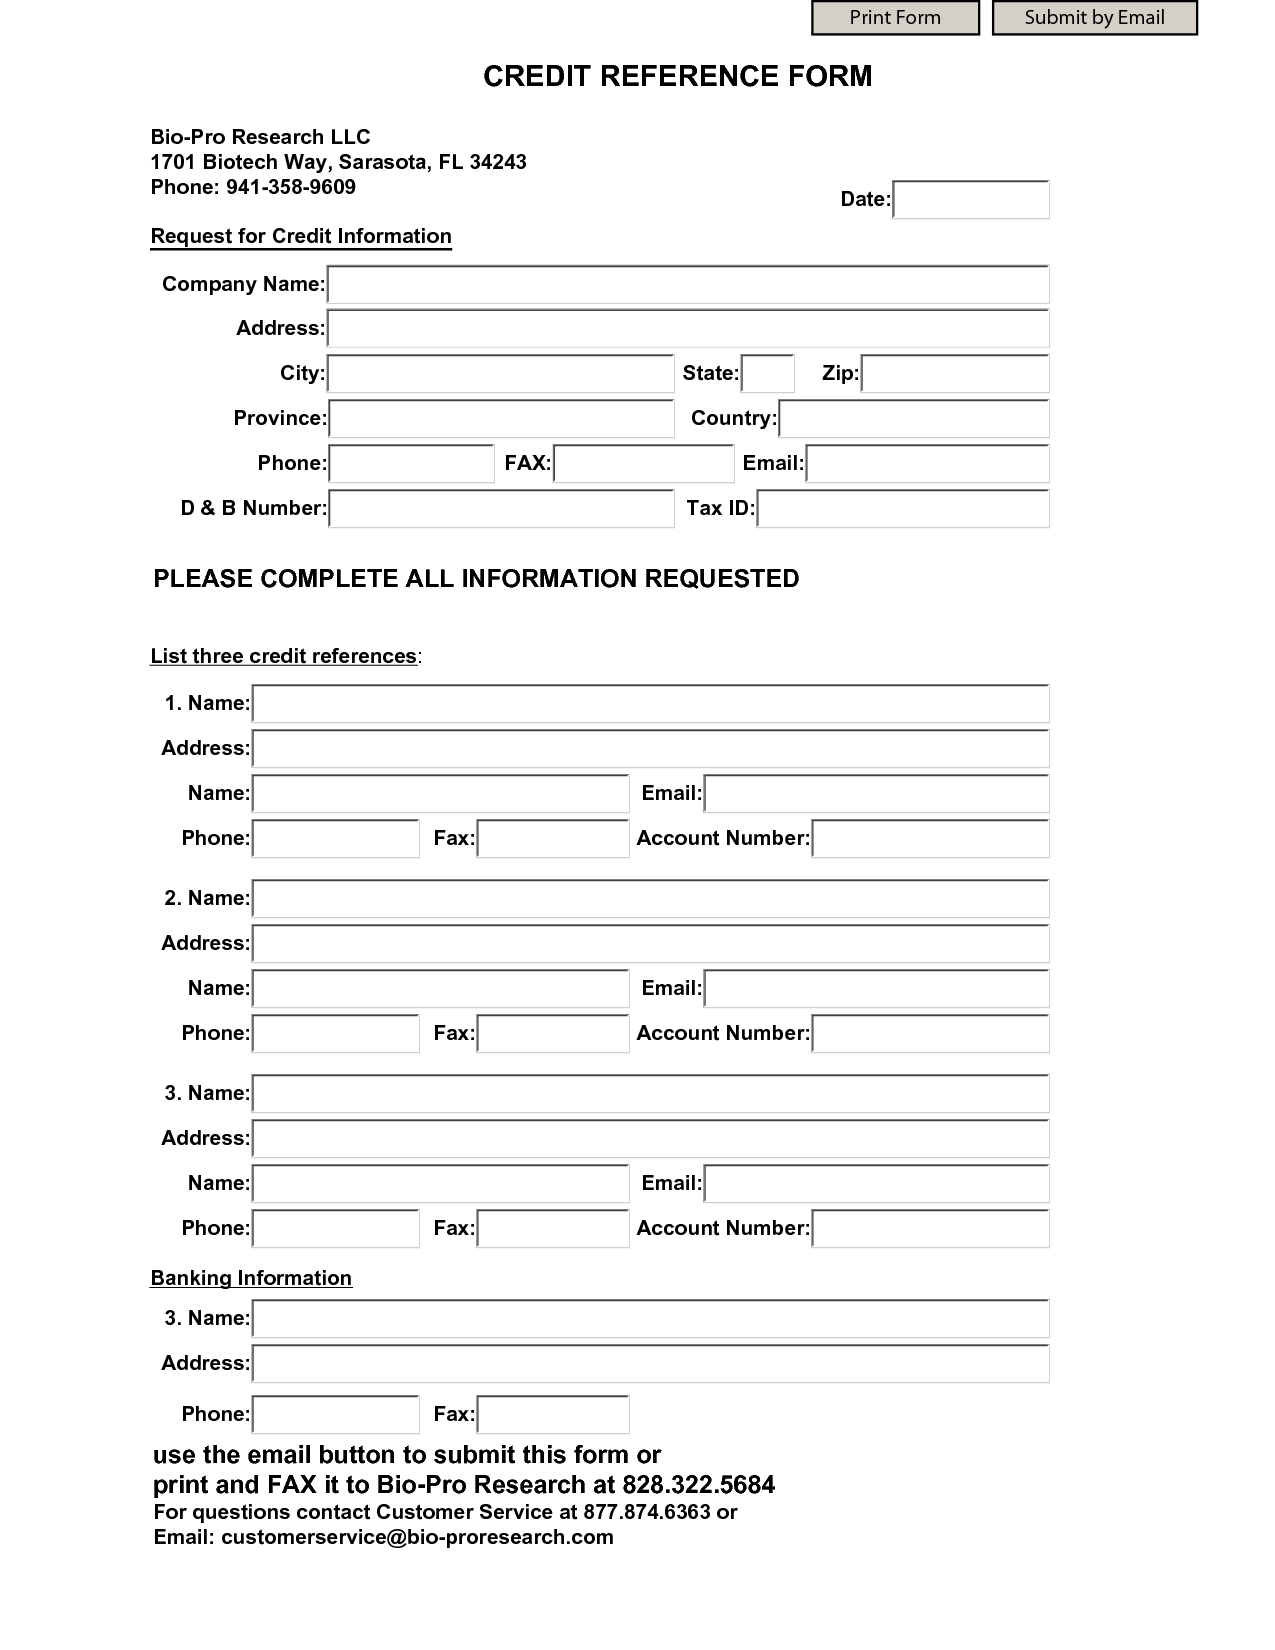 Business credit reference form charlotte clergy coalition for Employment reference check form template